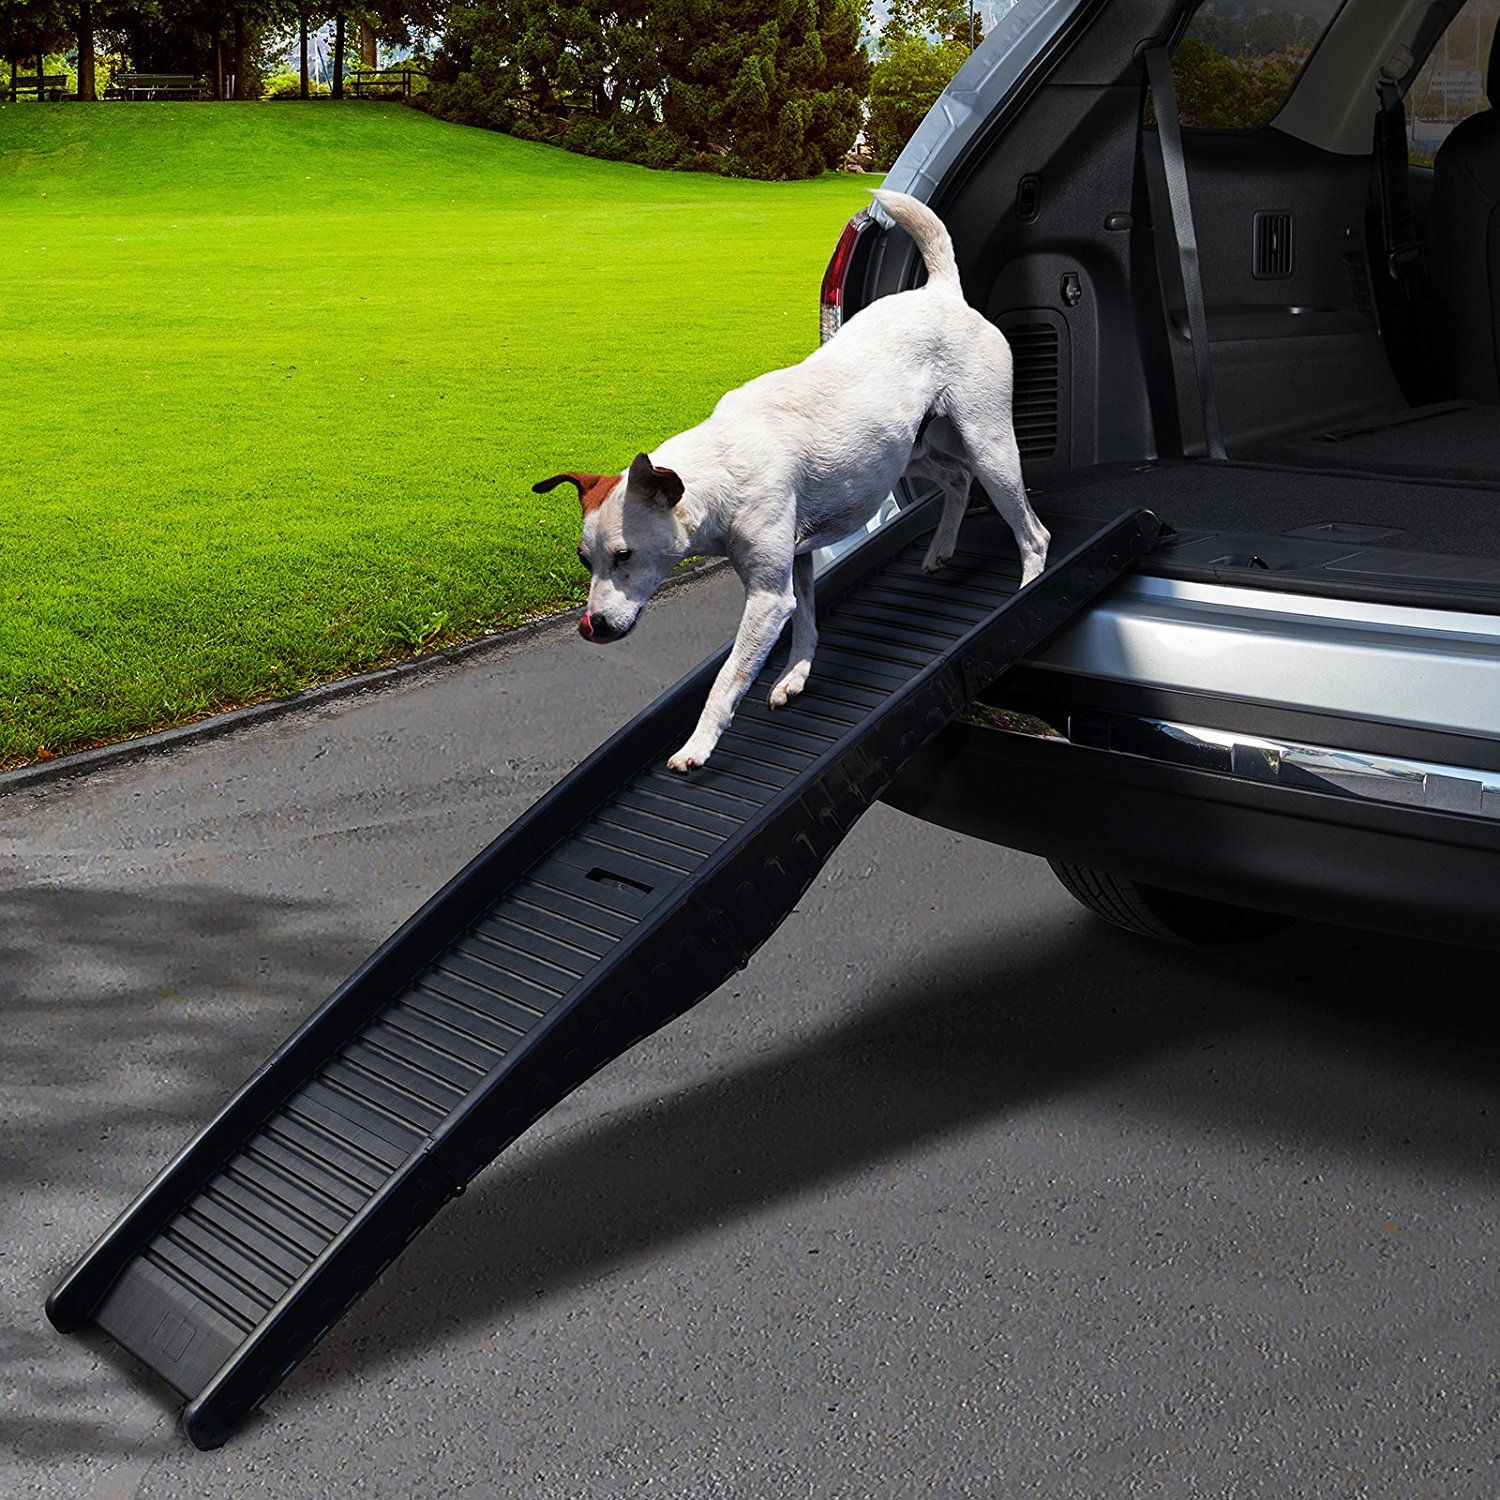 Save 44 today on a car ramp for your seniordog! DogMom